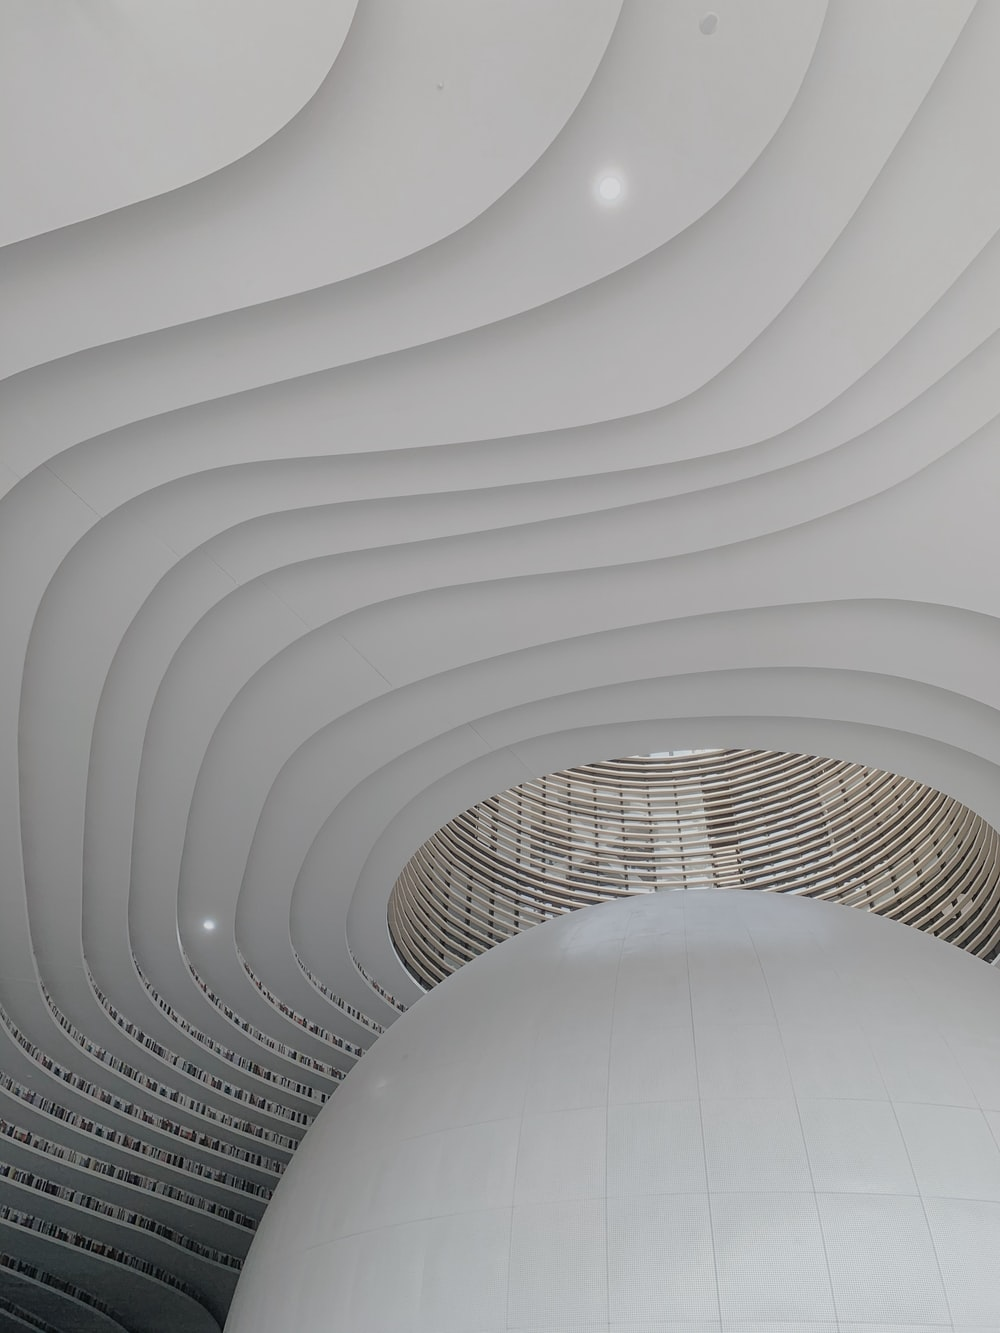 white concrete building interior during daytime